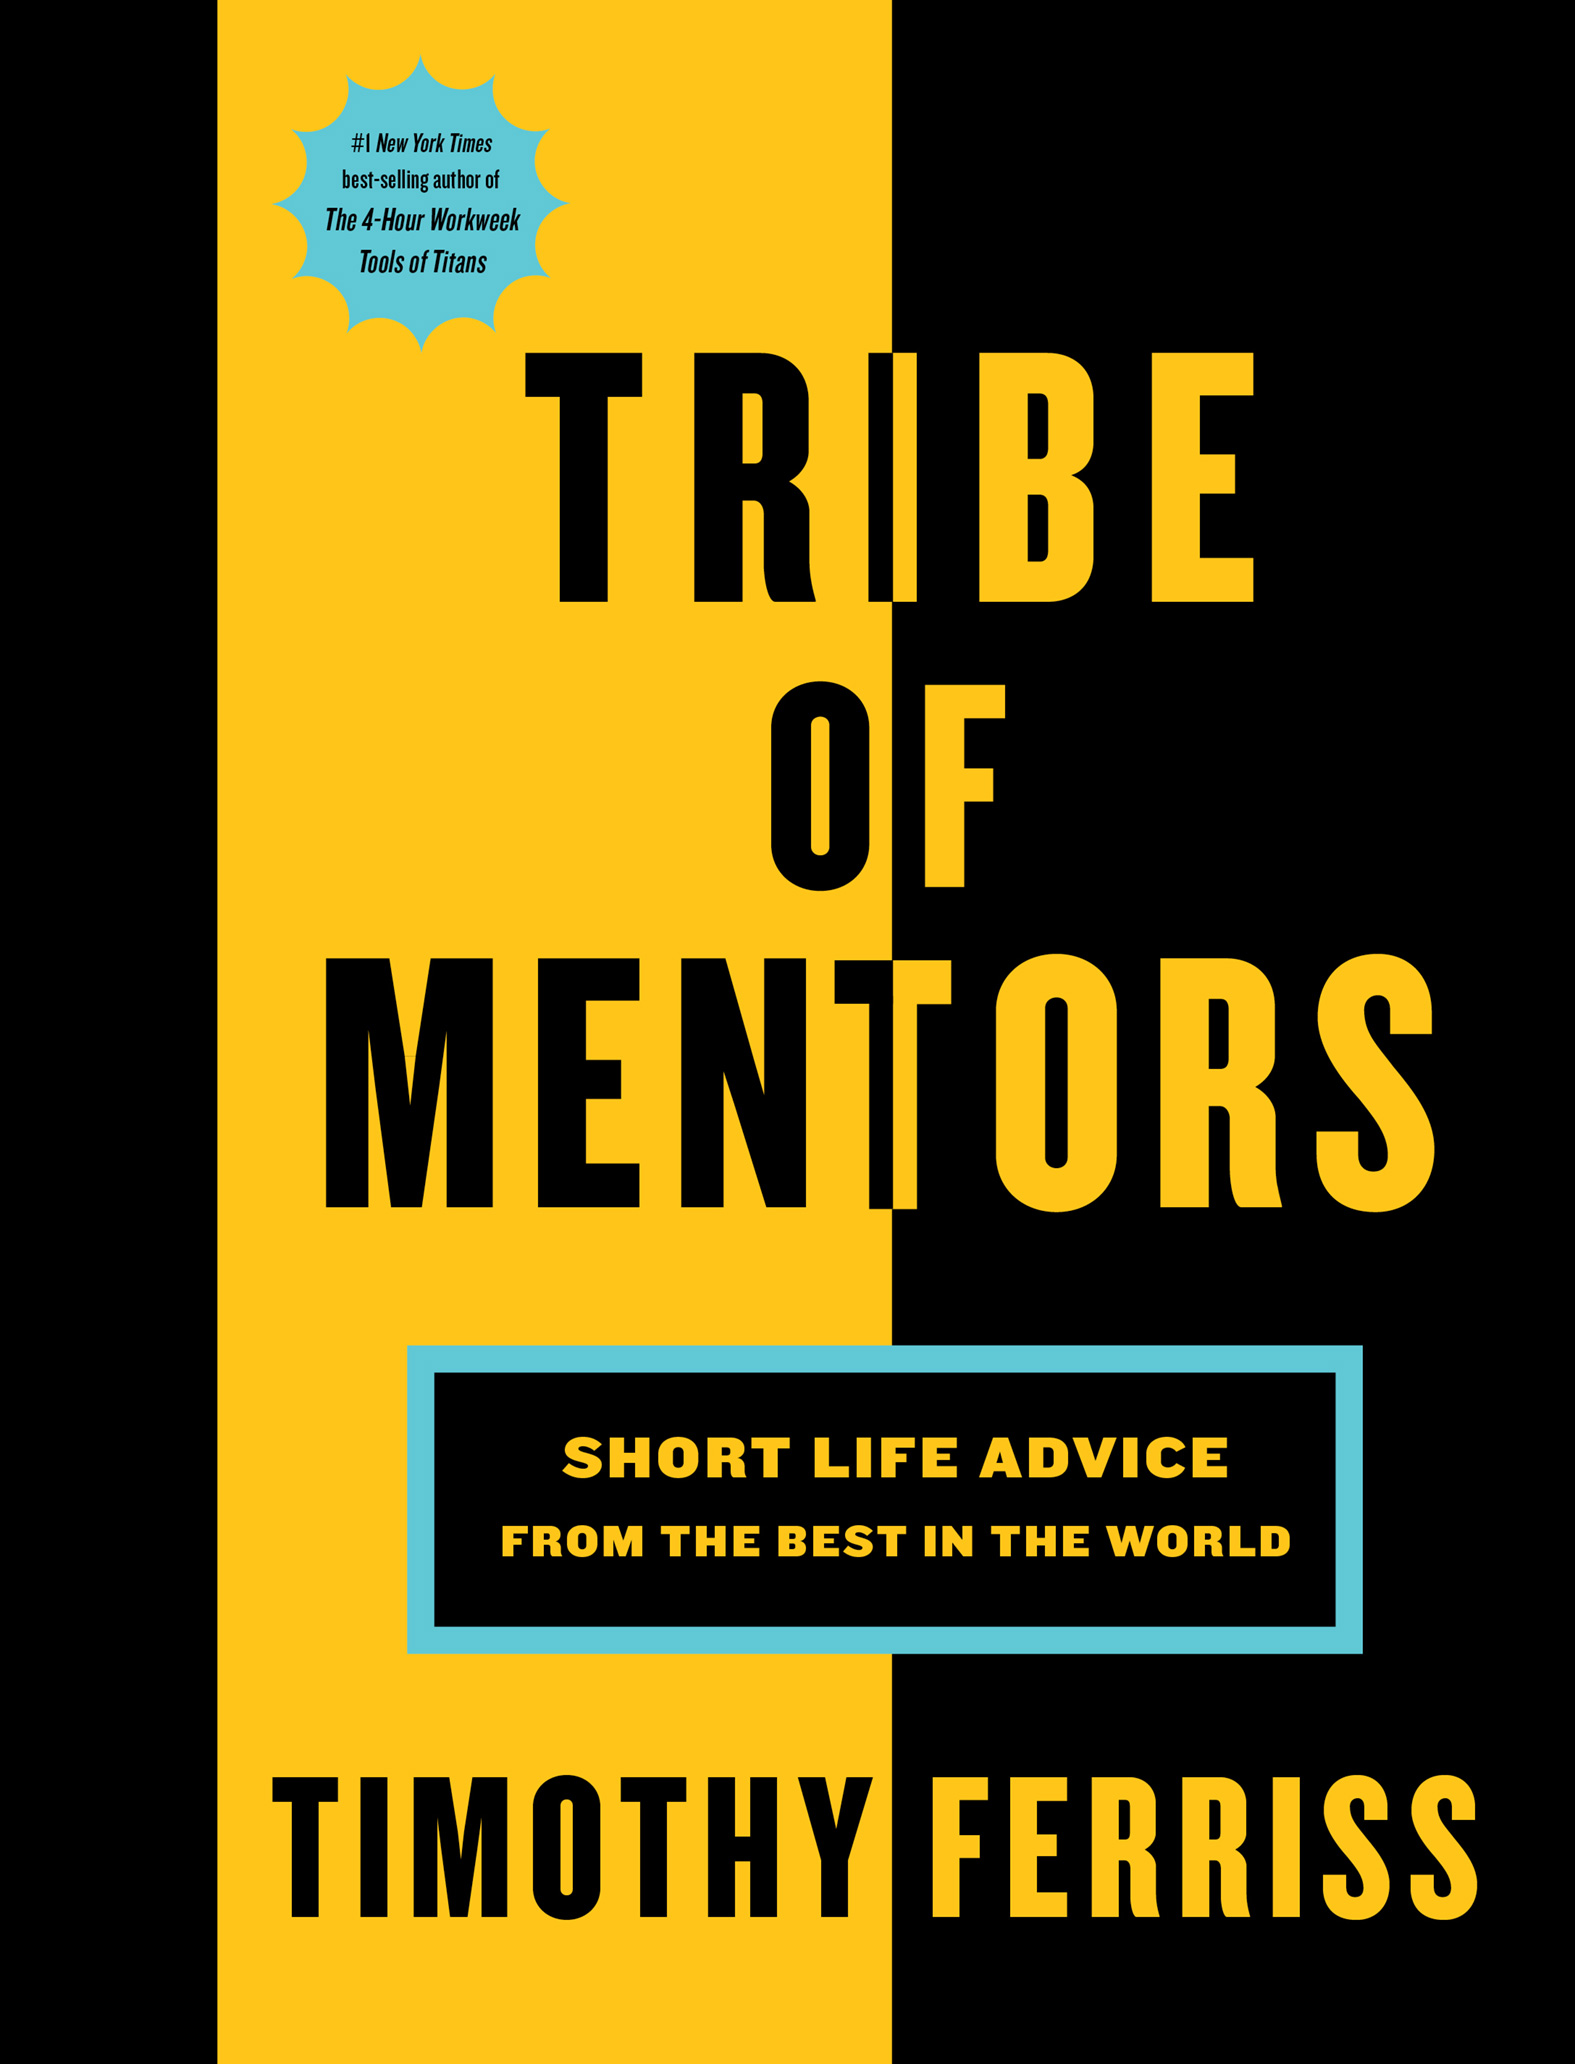 Book cover of Tribe of mentors by tim ferriss.